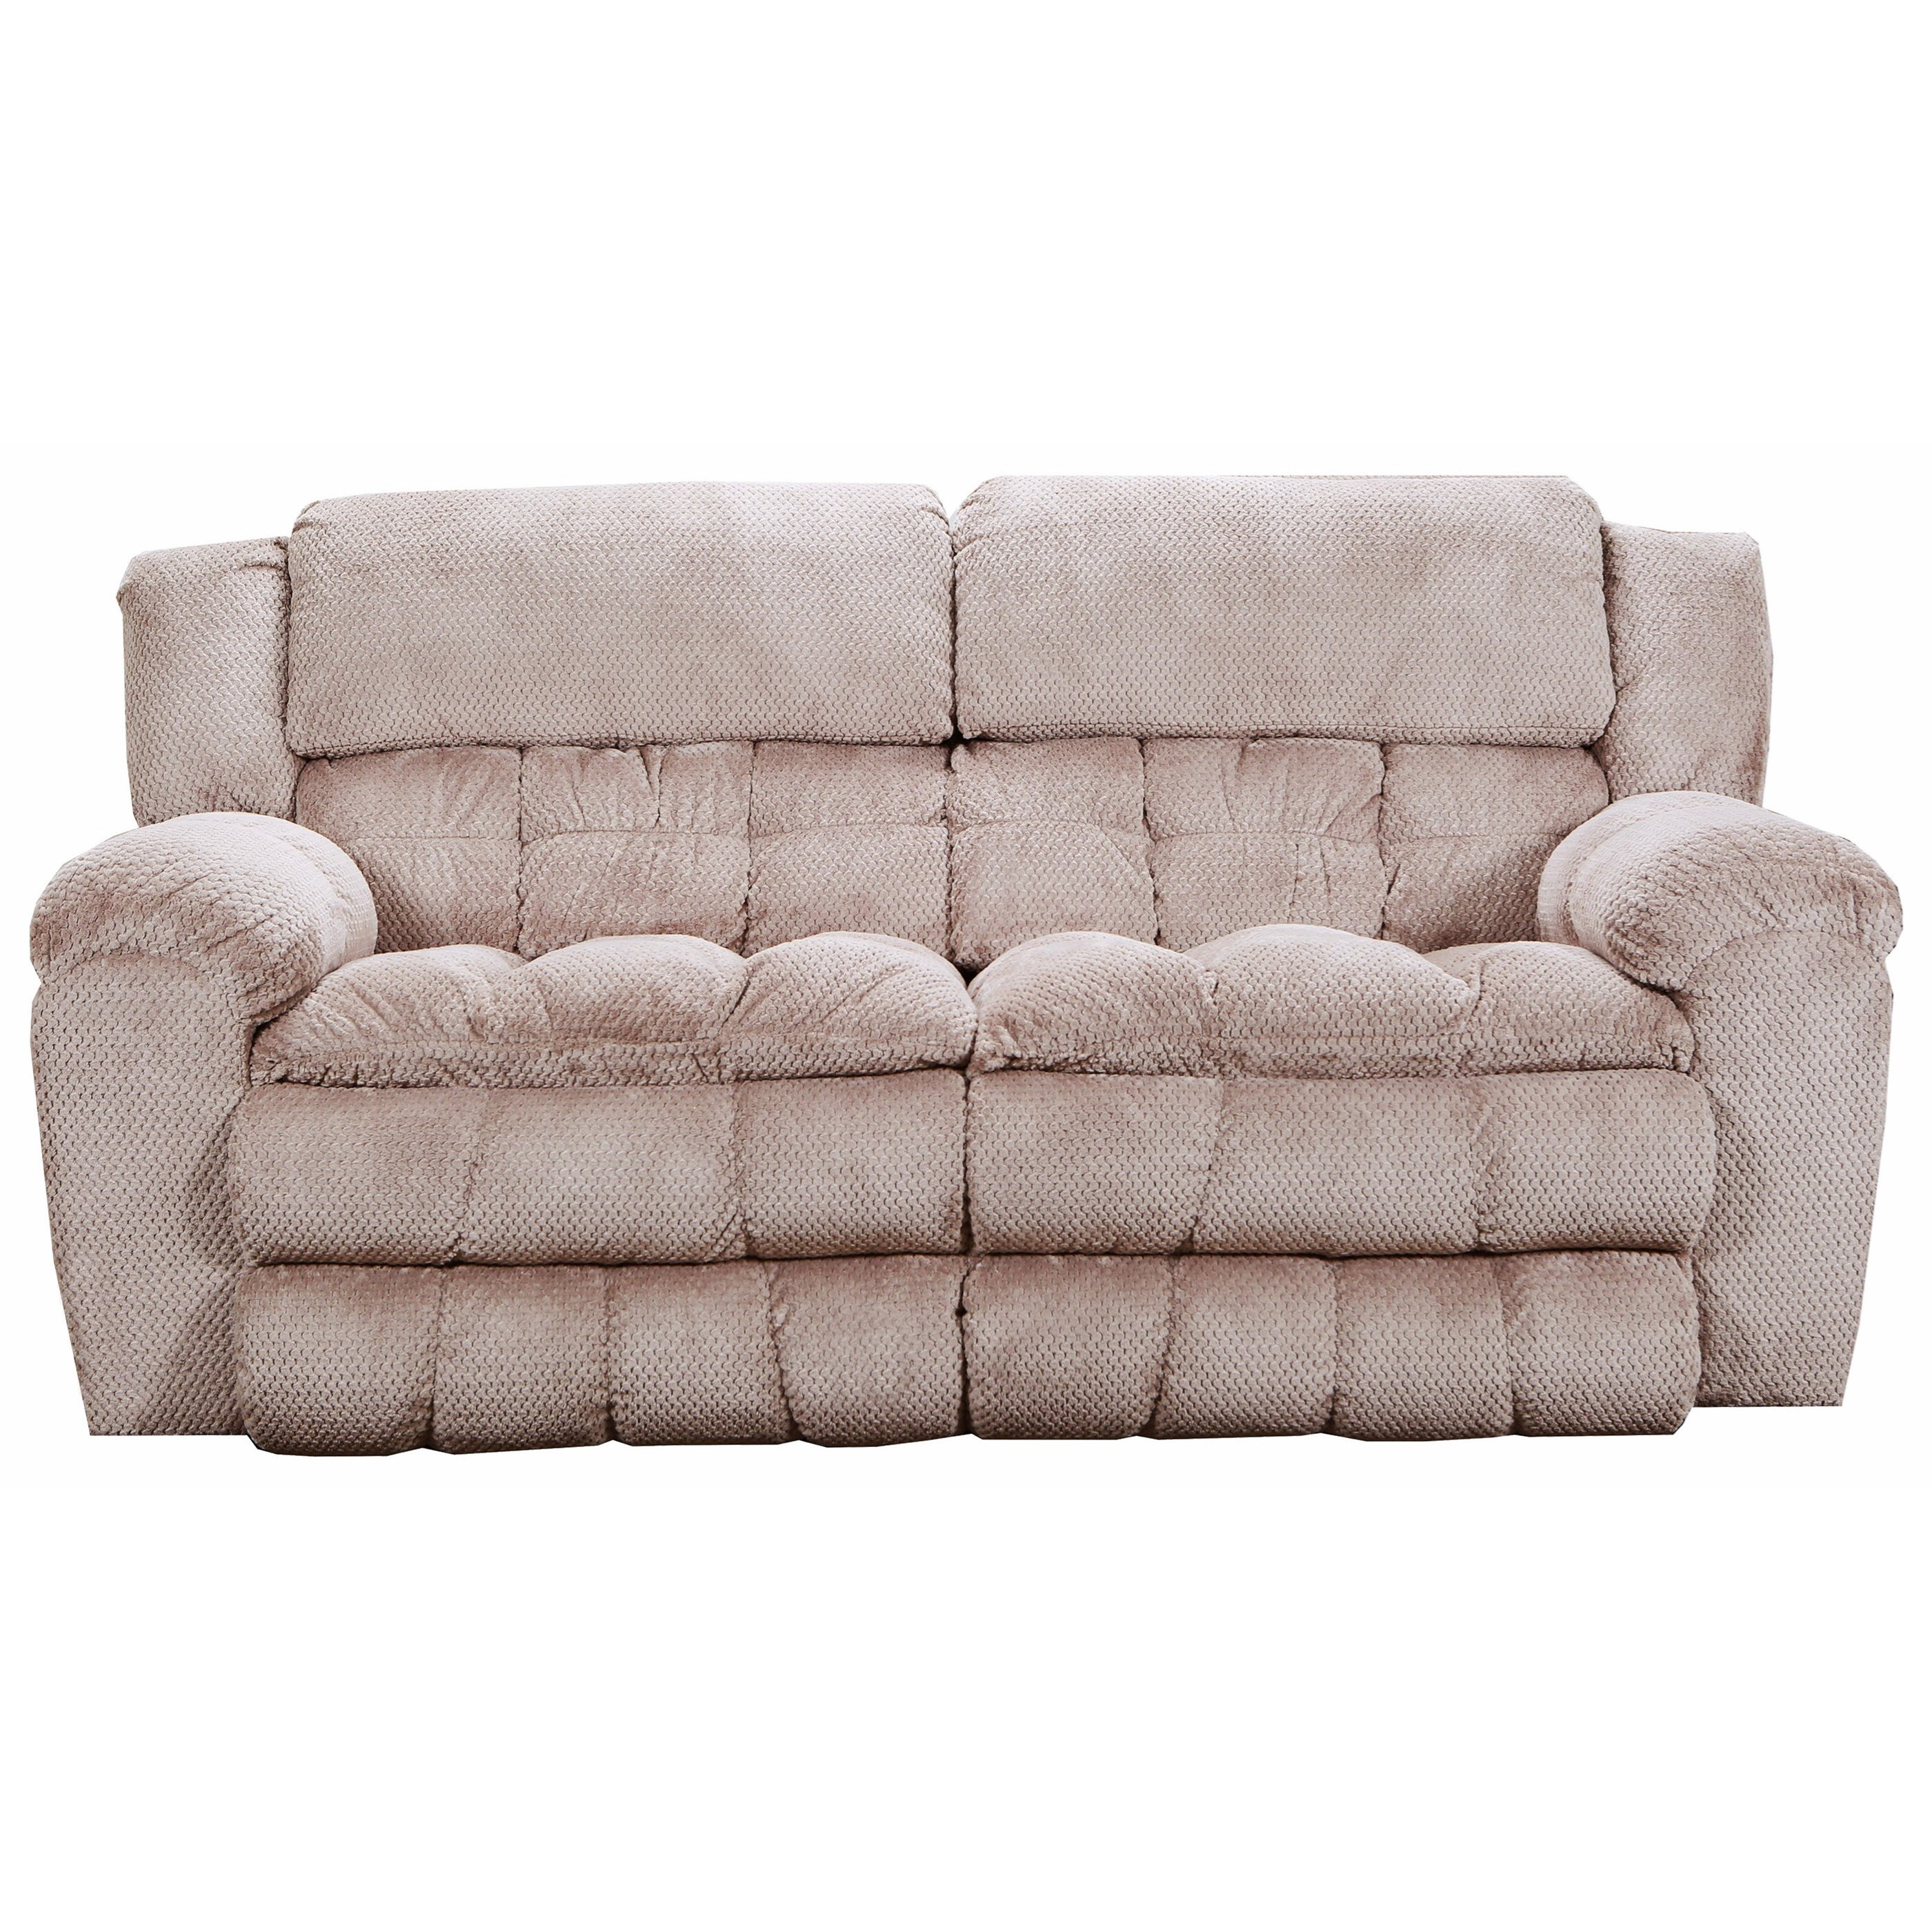 50580BR Double Motion Sofa by United Furniture Industries at Dream Home Interiors